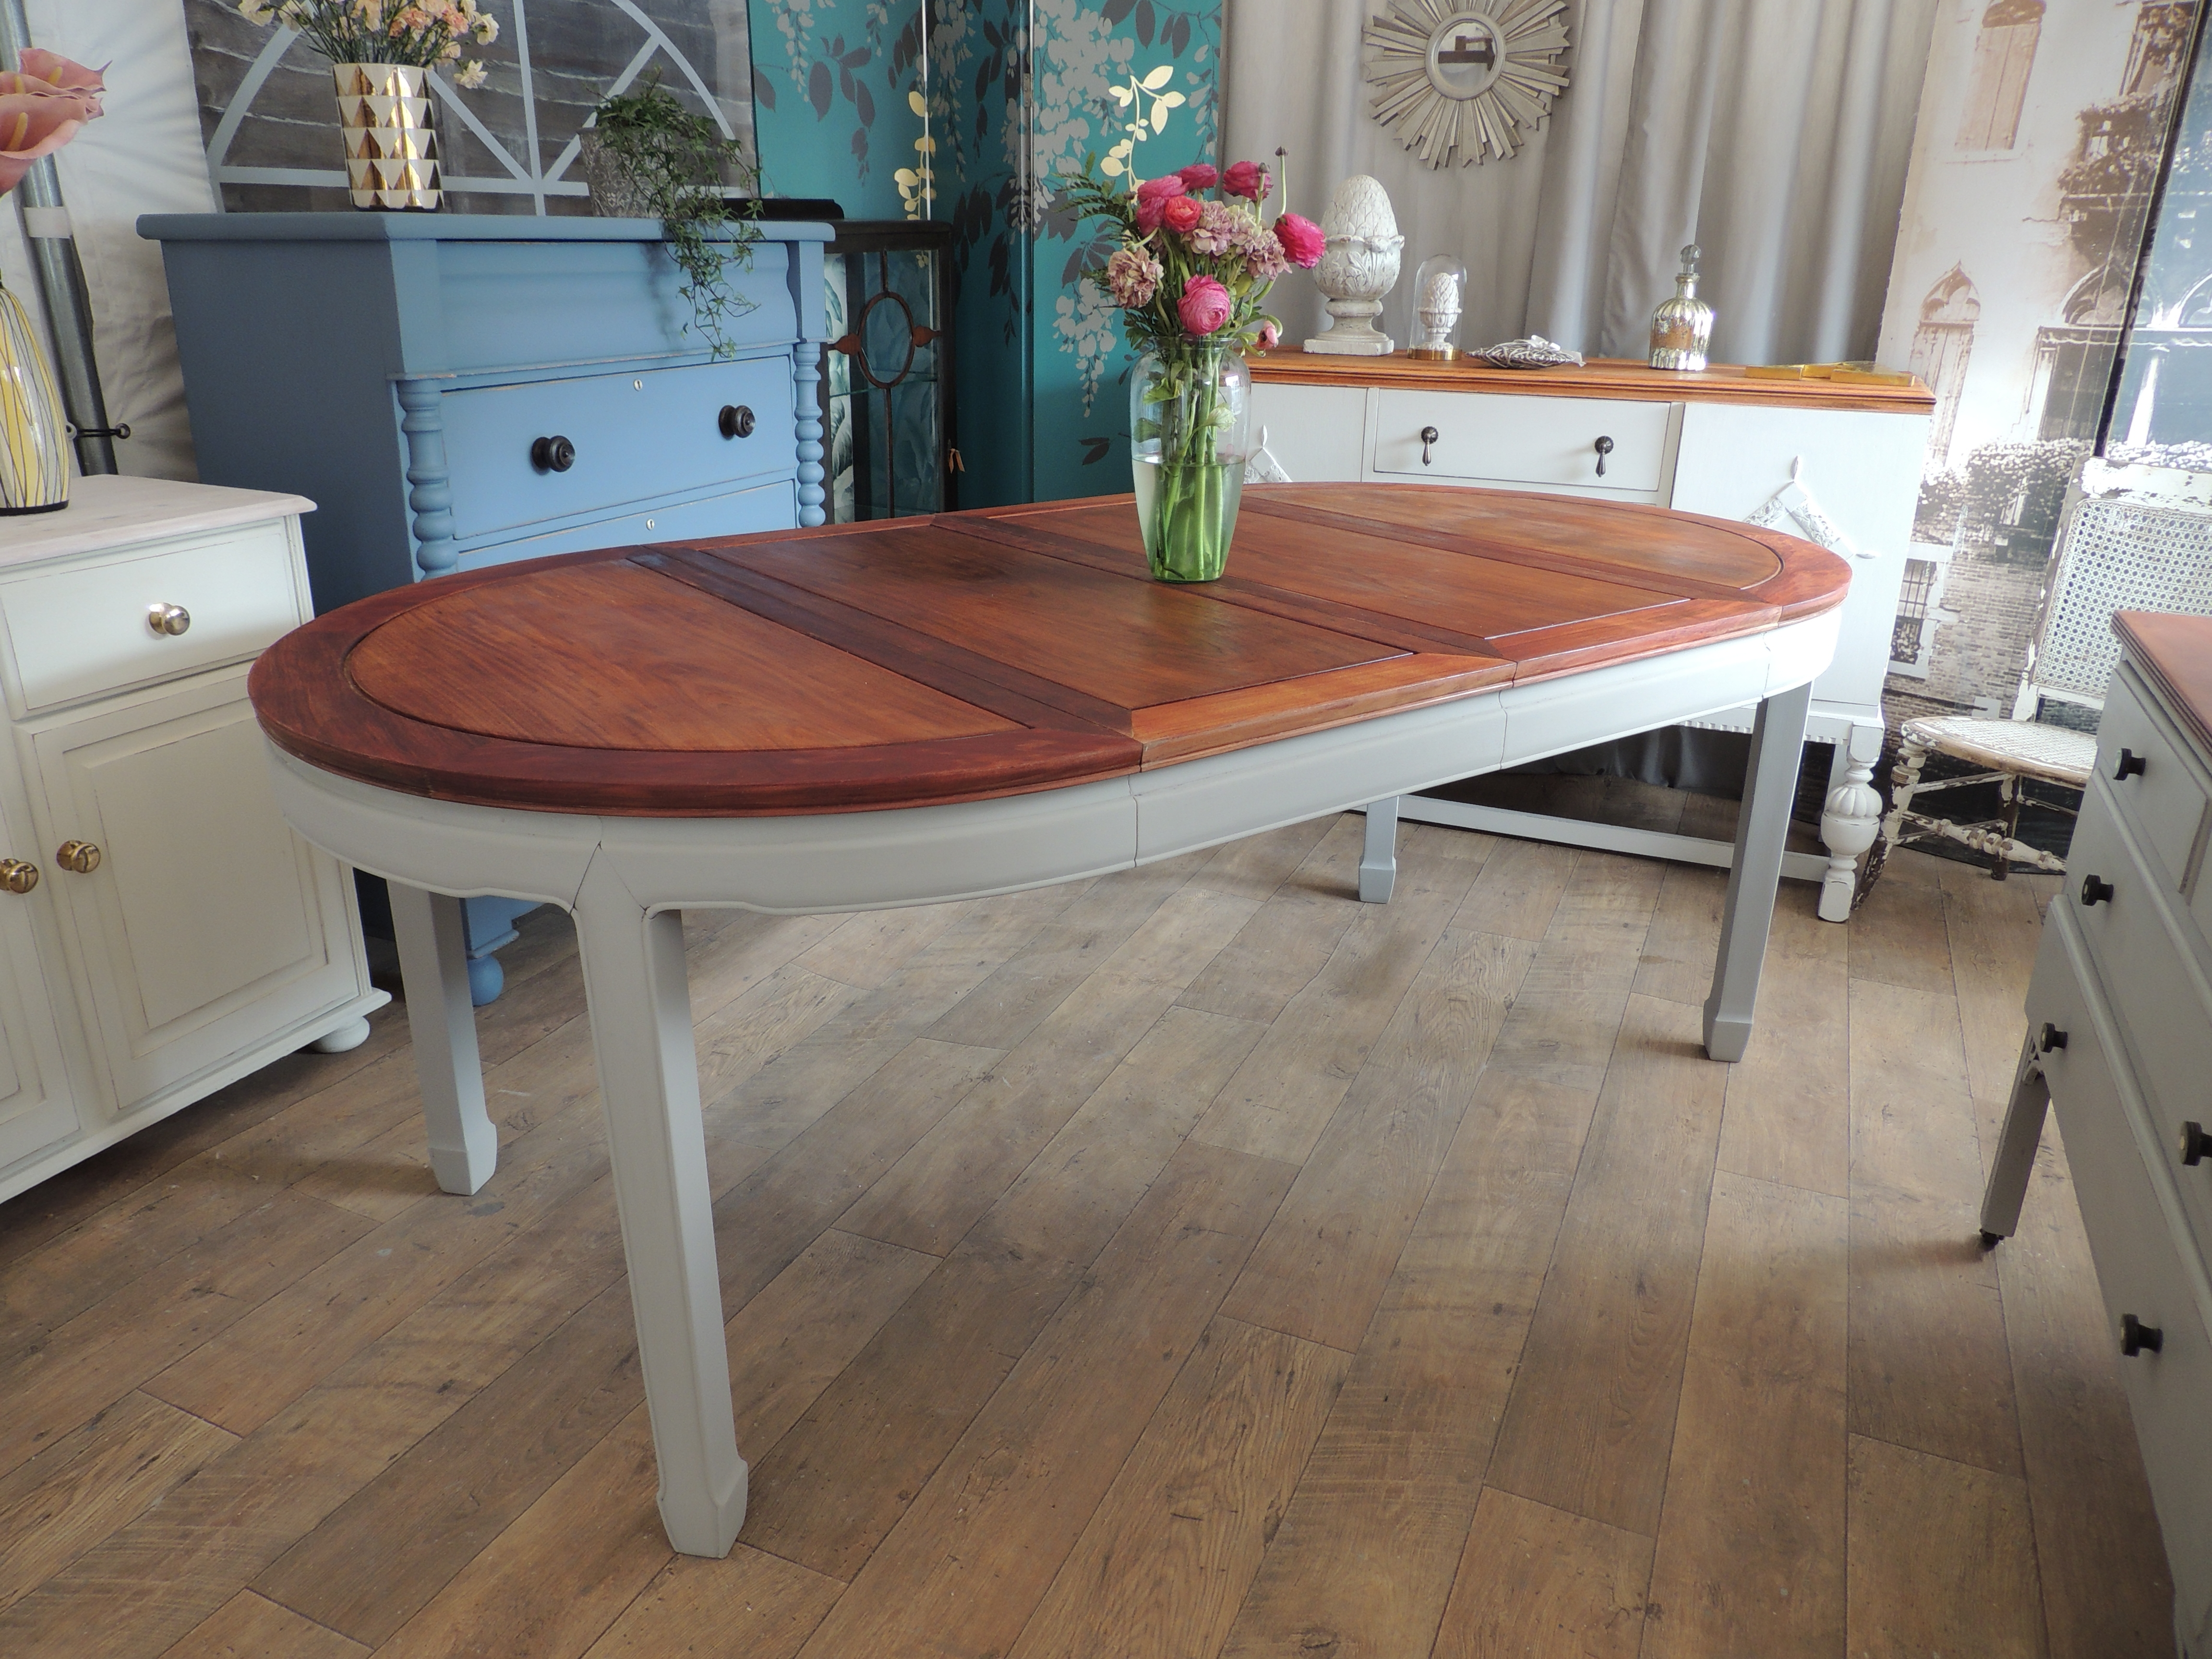 Shabby Chic Extending Dining Table For 4 8 People – Eclectivo London Throughout Popular Shabby Chic Extendable Dining Tables (View 14 of 25)